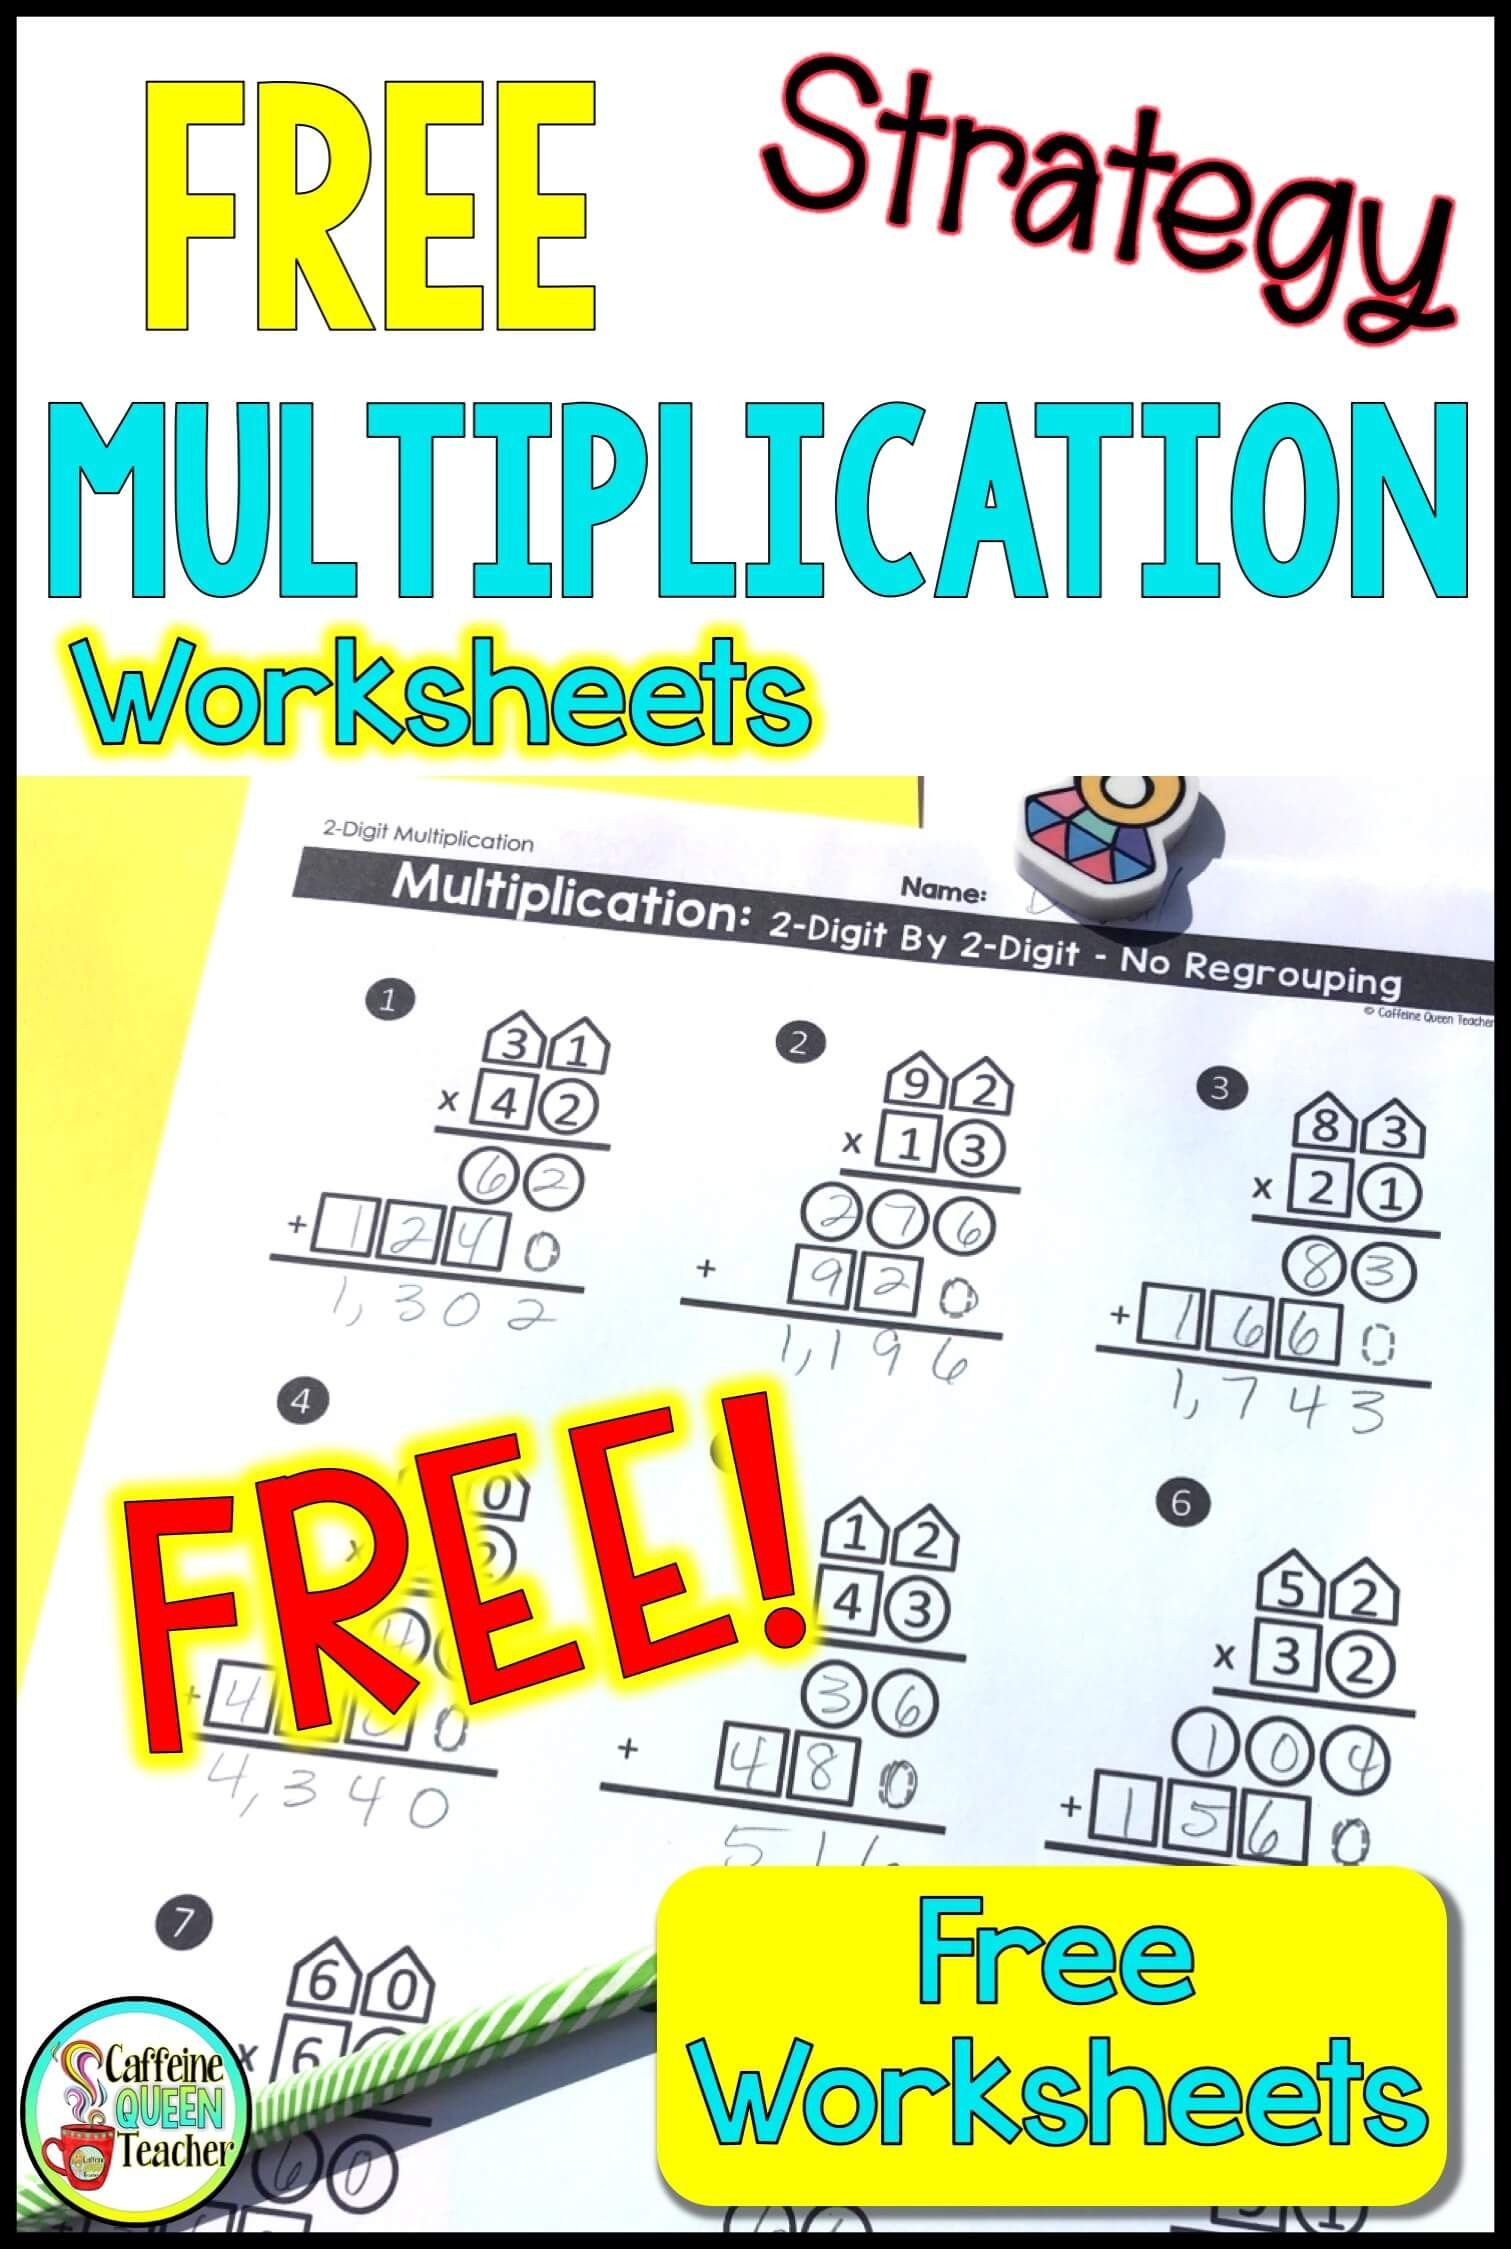 2 Digit Multiplication Worksheets Differentiated Free